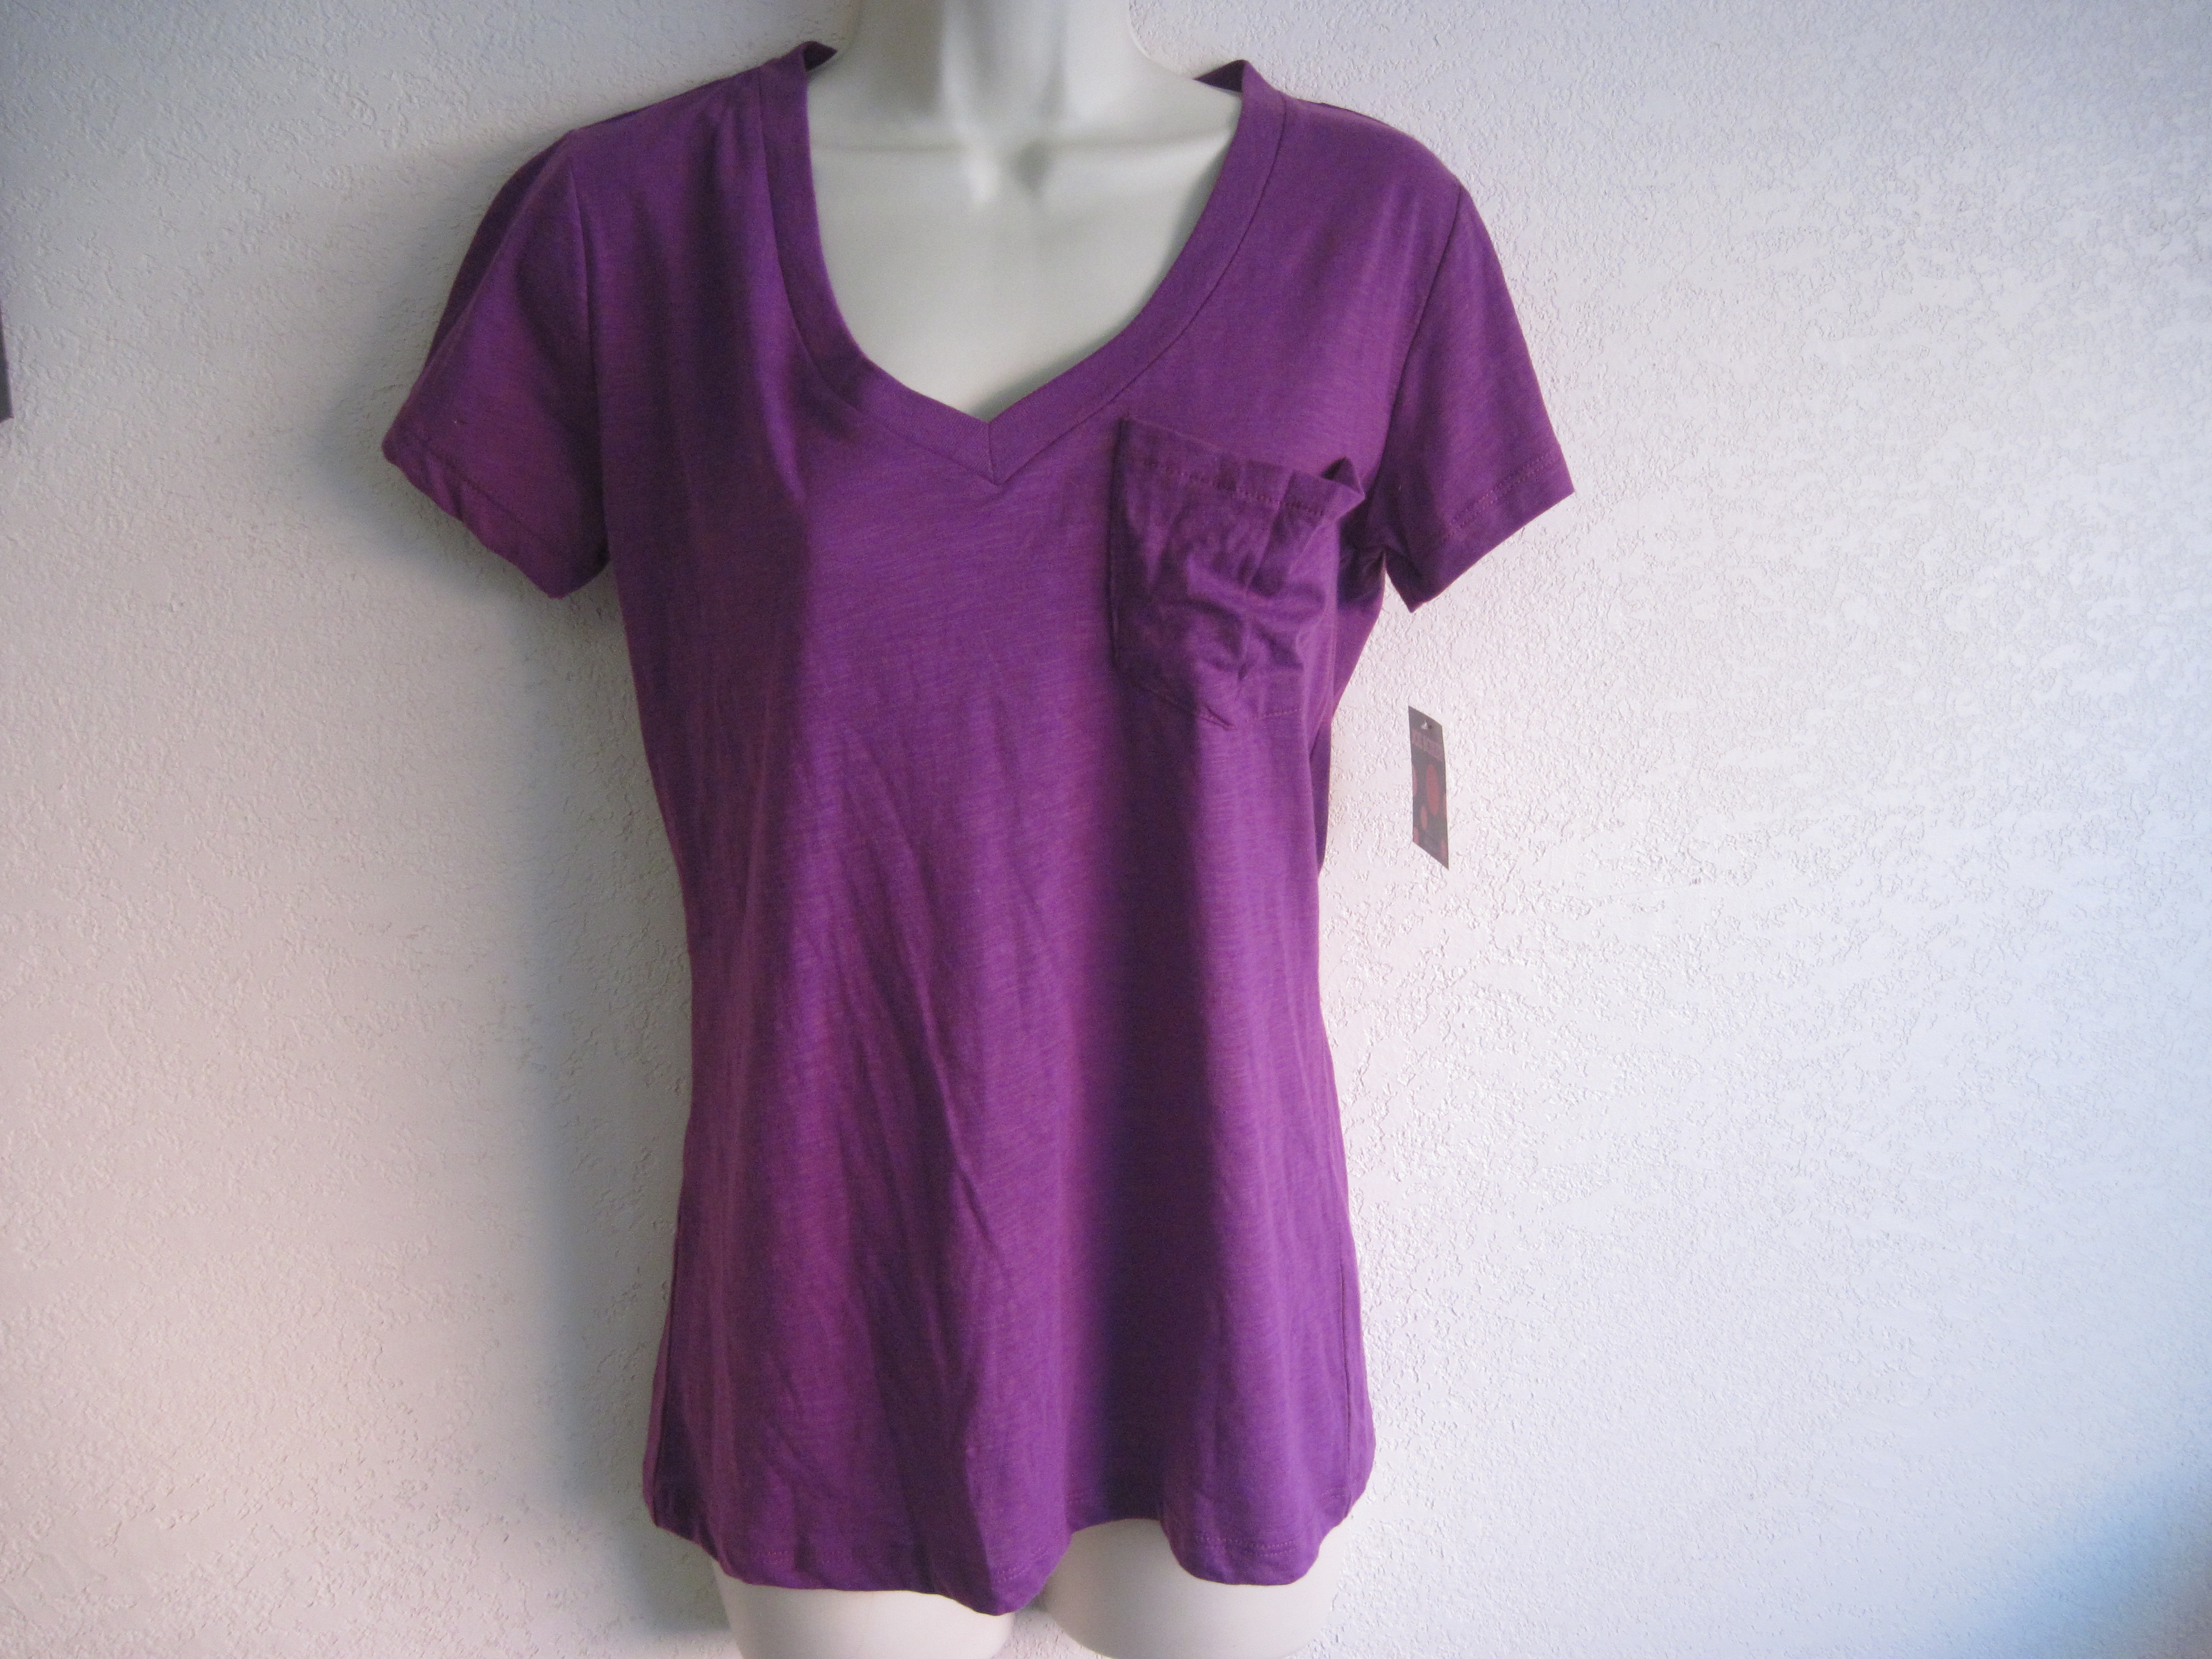 Joe Boxer Sz Small V-Neck Pocketed Tee (purple)